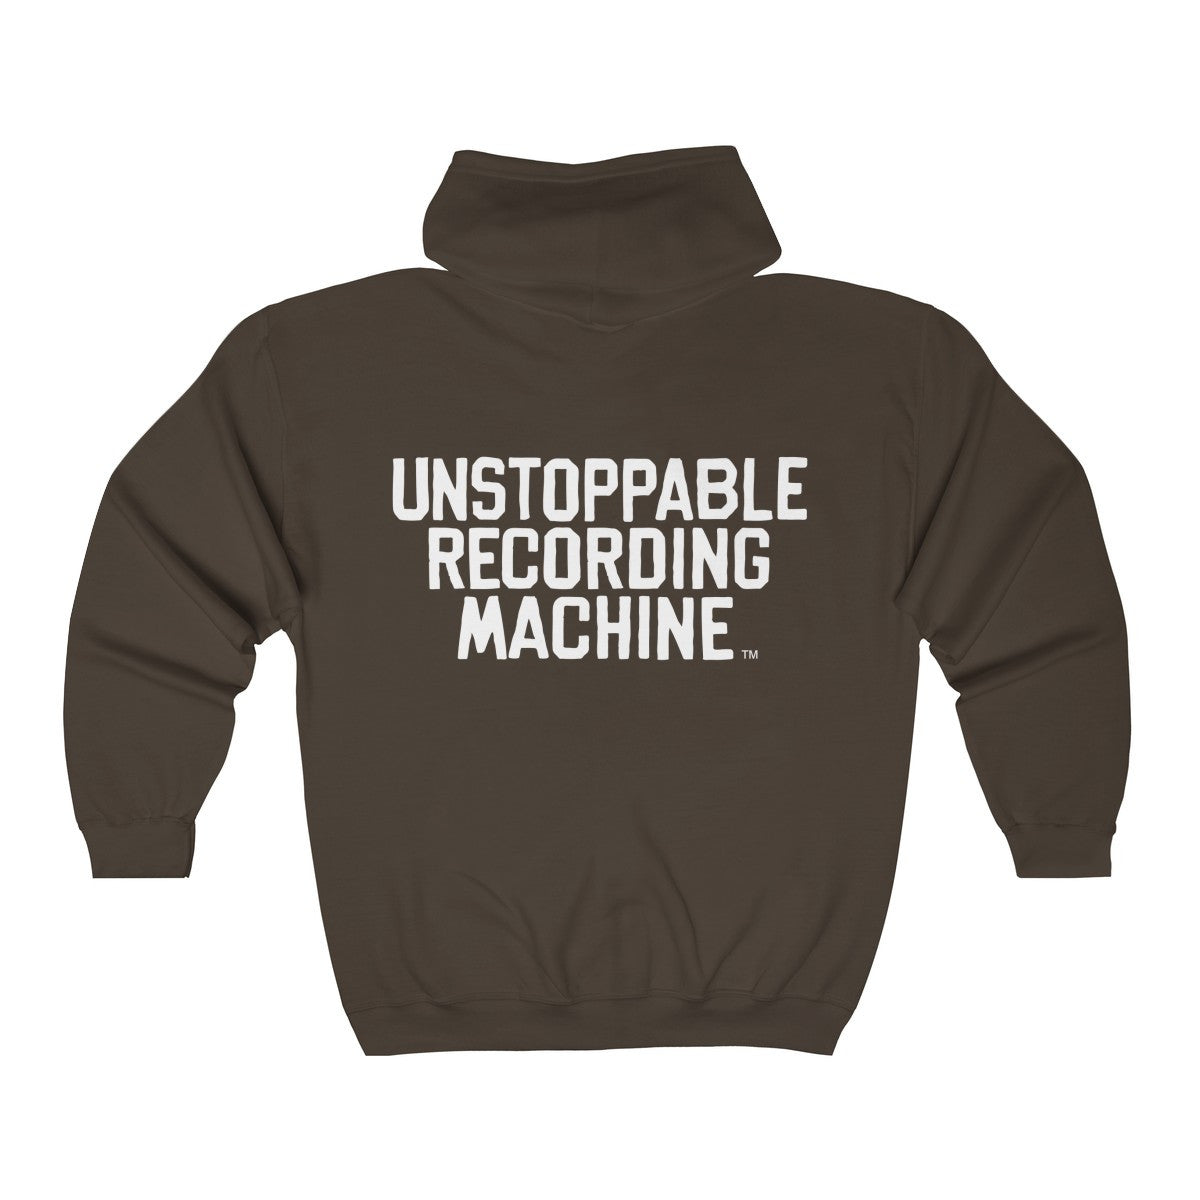 URM Tape Machine Zip Hooded Sweatshirt, White Print